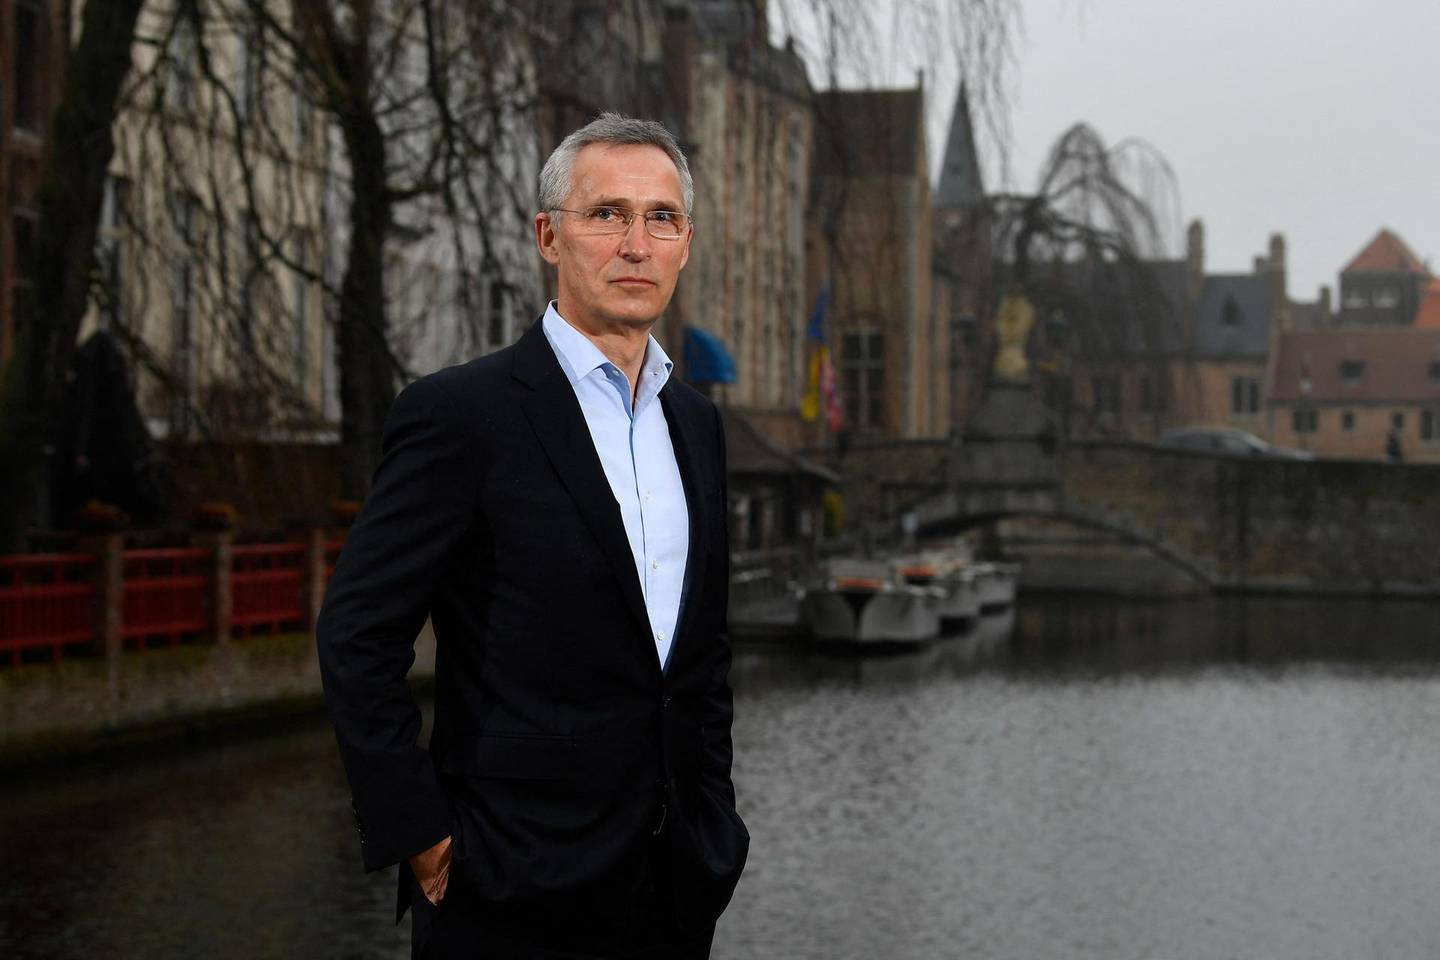 """NATO Secretary General Jens Stoltenberg poses after an interview with AFP at the College of Europe in Bruges, on March 4, 2021. NATO Secretary General Jens Stoltenberg warned on March 4, that the European Union cannot defend its citizens alone without the help of the trans-Atlantic alliance. Some EU leaders have been pushing for their union to develop more """"strategic autonomy"""", a move which some see as setting up a rivalry between Brussels and Washington. But Stoltenberg, a guest at the College of Europe, said that EU member states that were members of NATO made up only a fifth of the total alliance defence spending that protects European shores.  / AFP / JOHN THYS"""